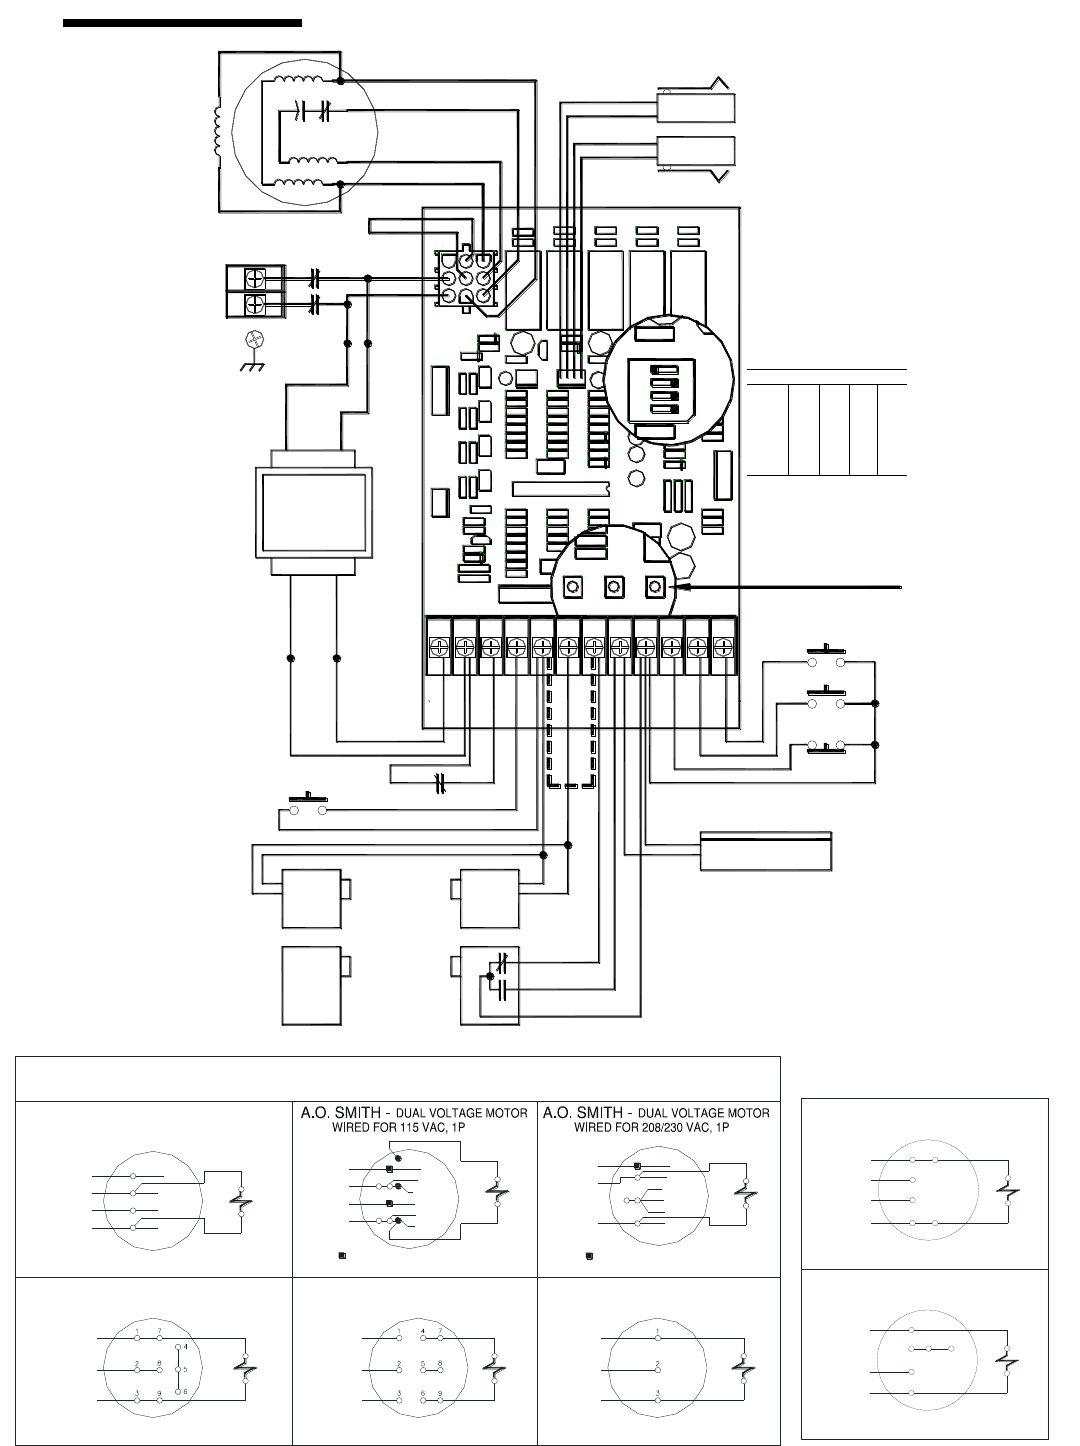 9028f597 4ae9 412f a06d e76d1de71b42 bg16 page 22 of linear garage door opener j s user guide garage door opener wiring schematic at eliteediting.co